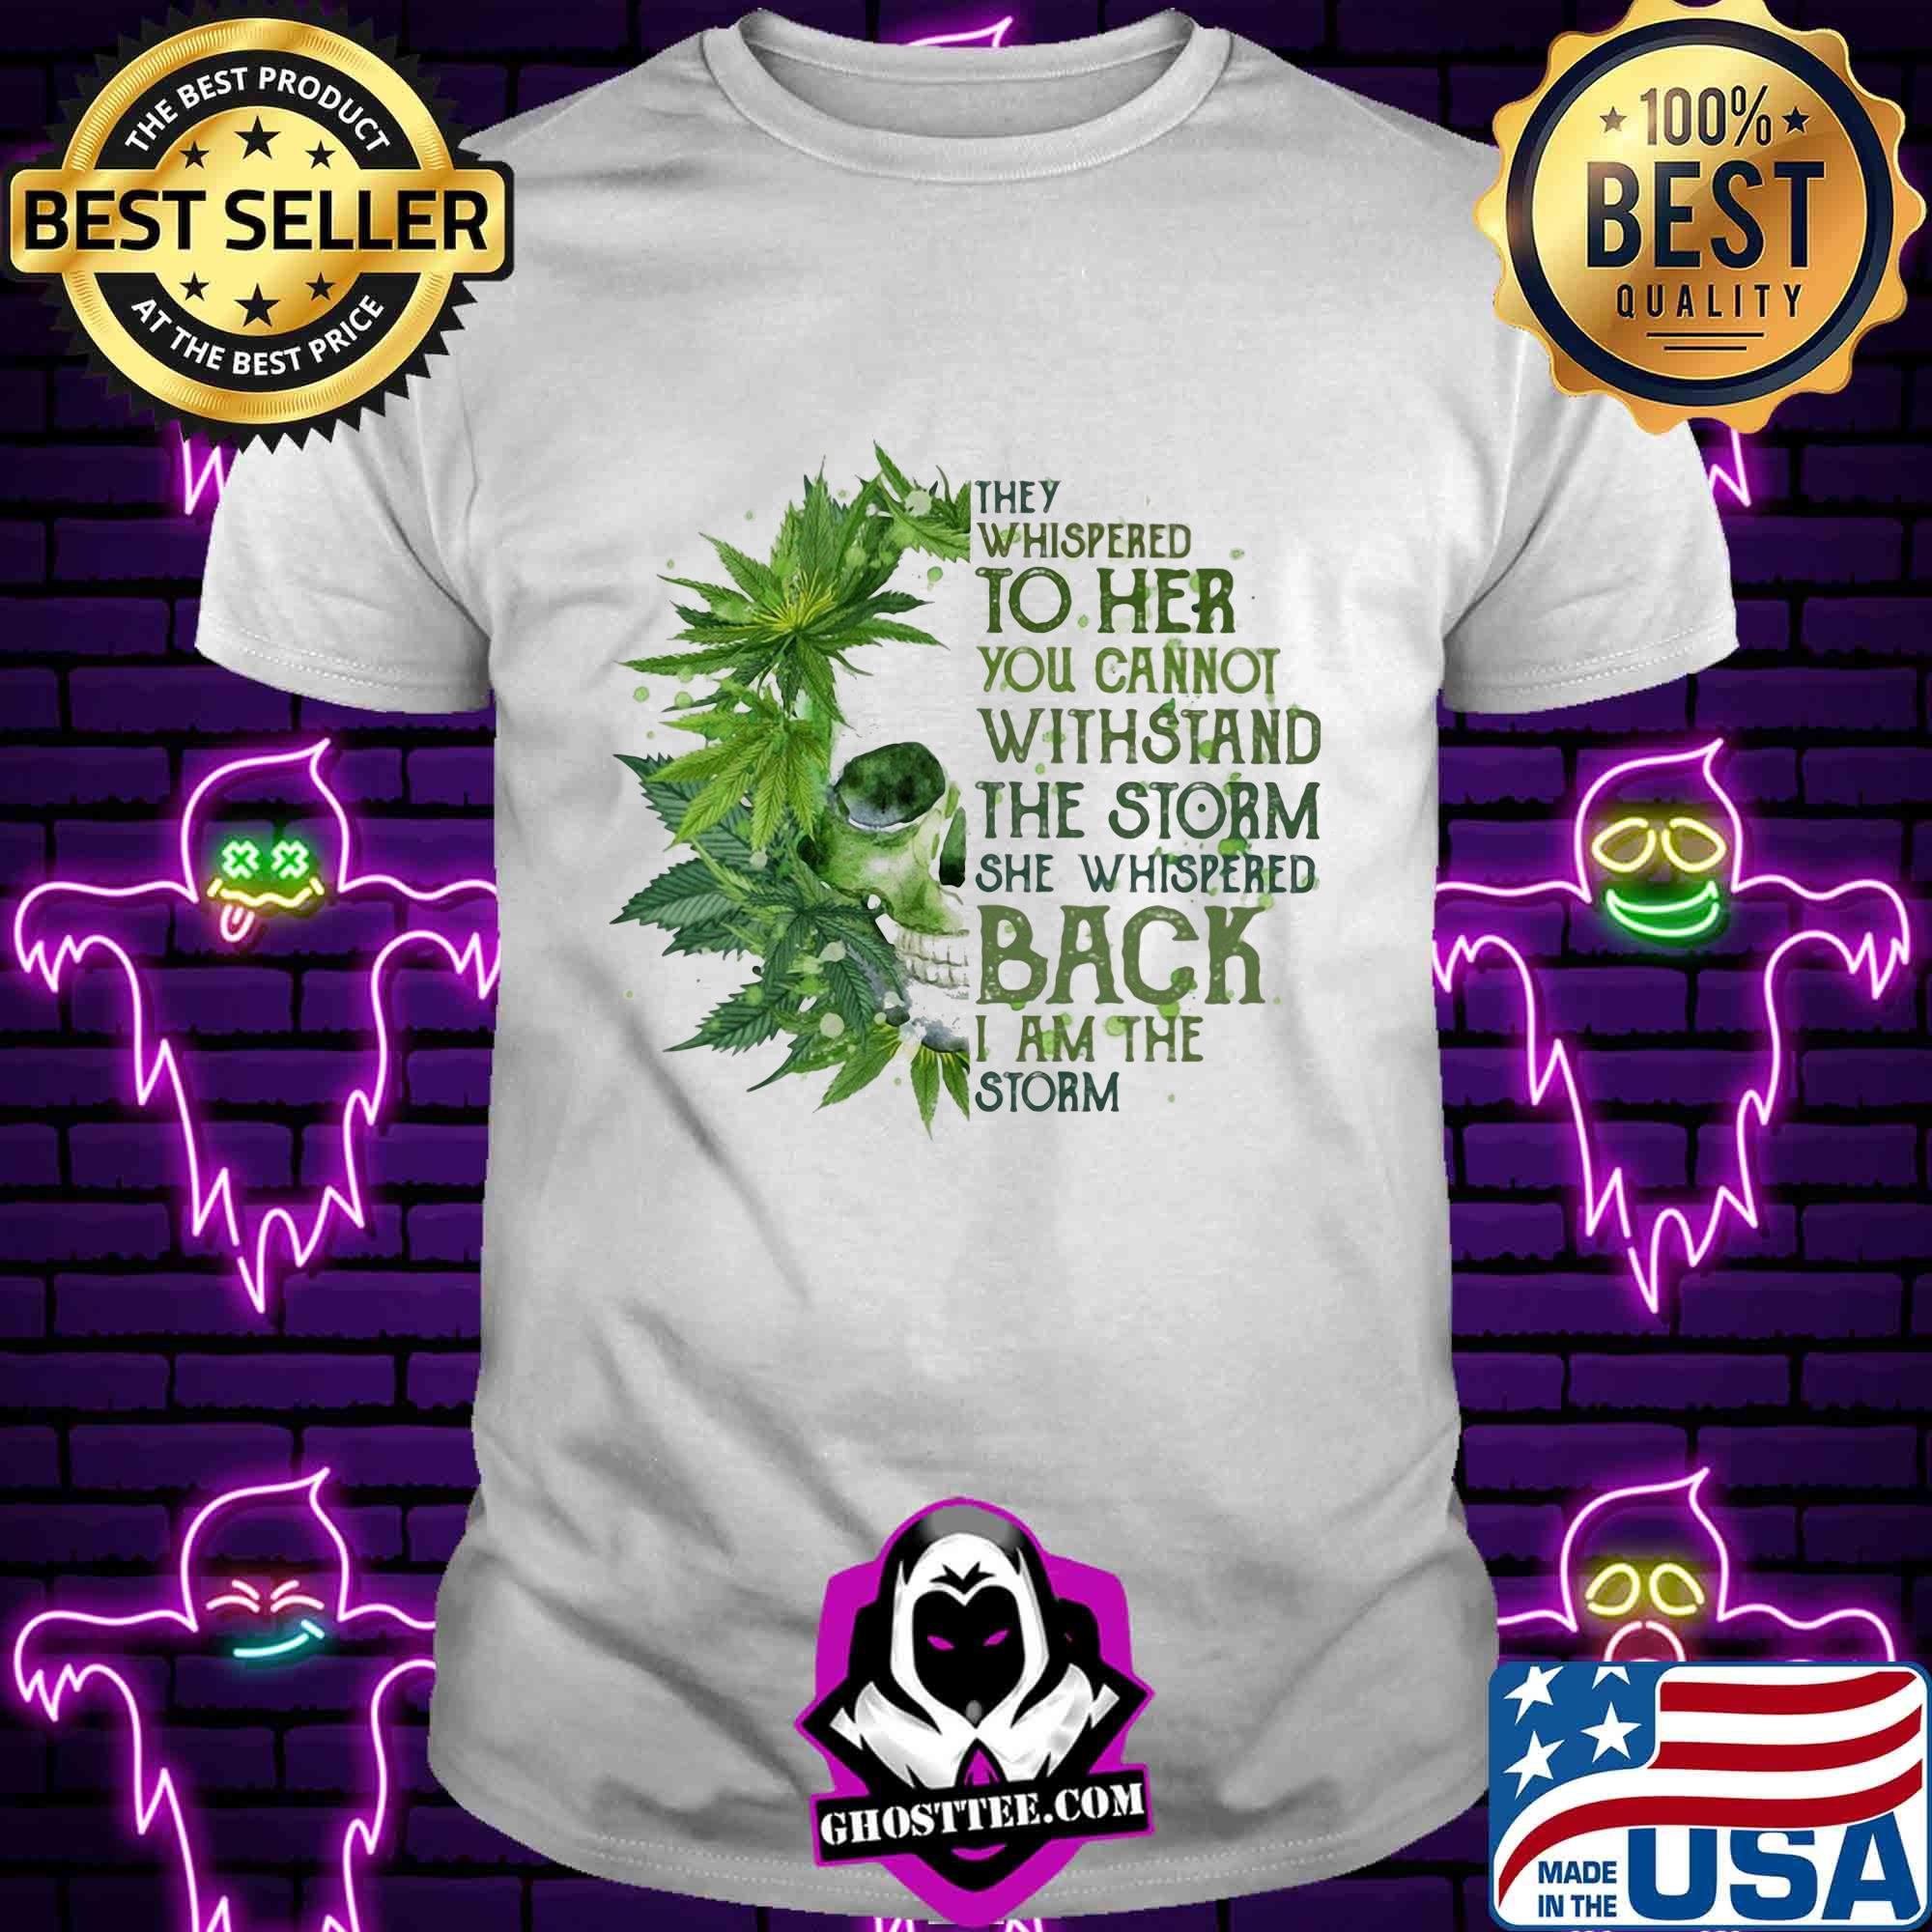 0d314775 they whispered to her you cannot withstand the storm she whispered back weed shirt unisex tee - Home